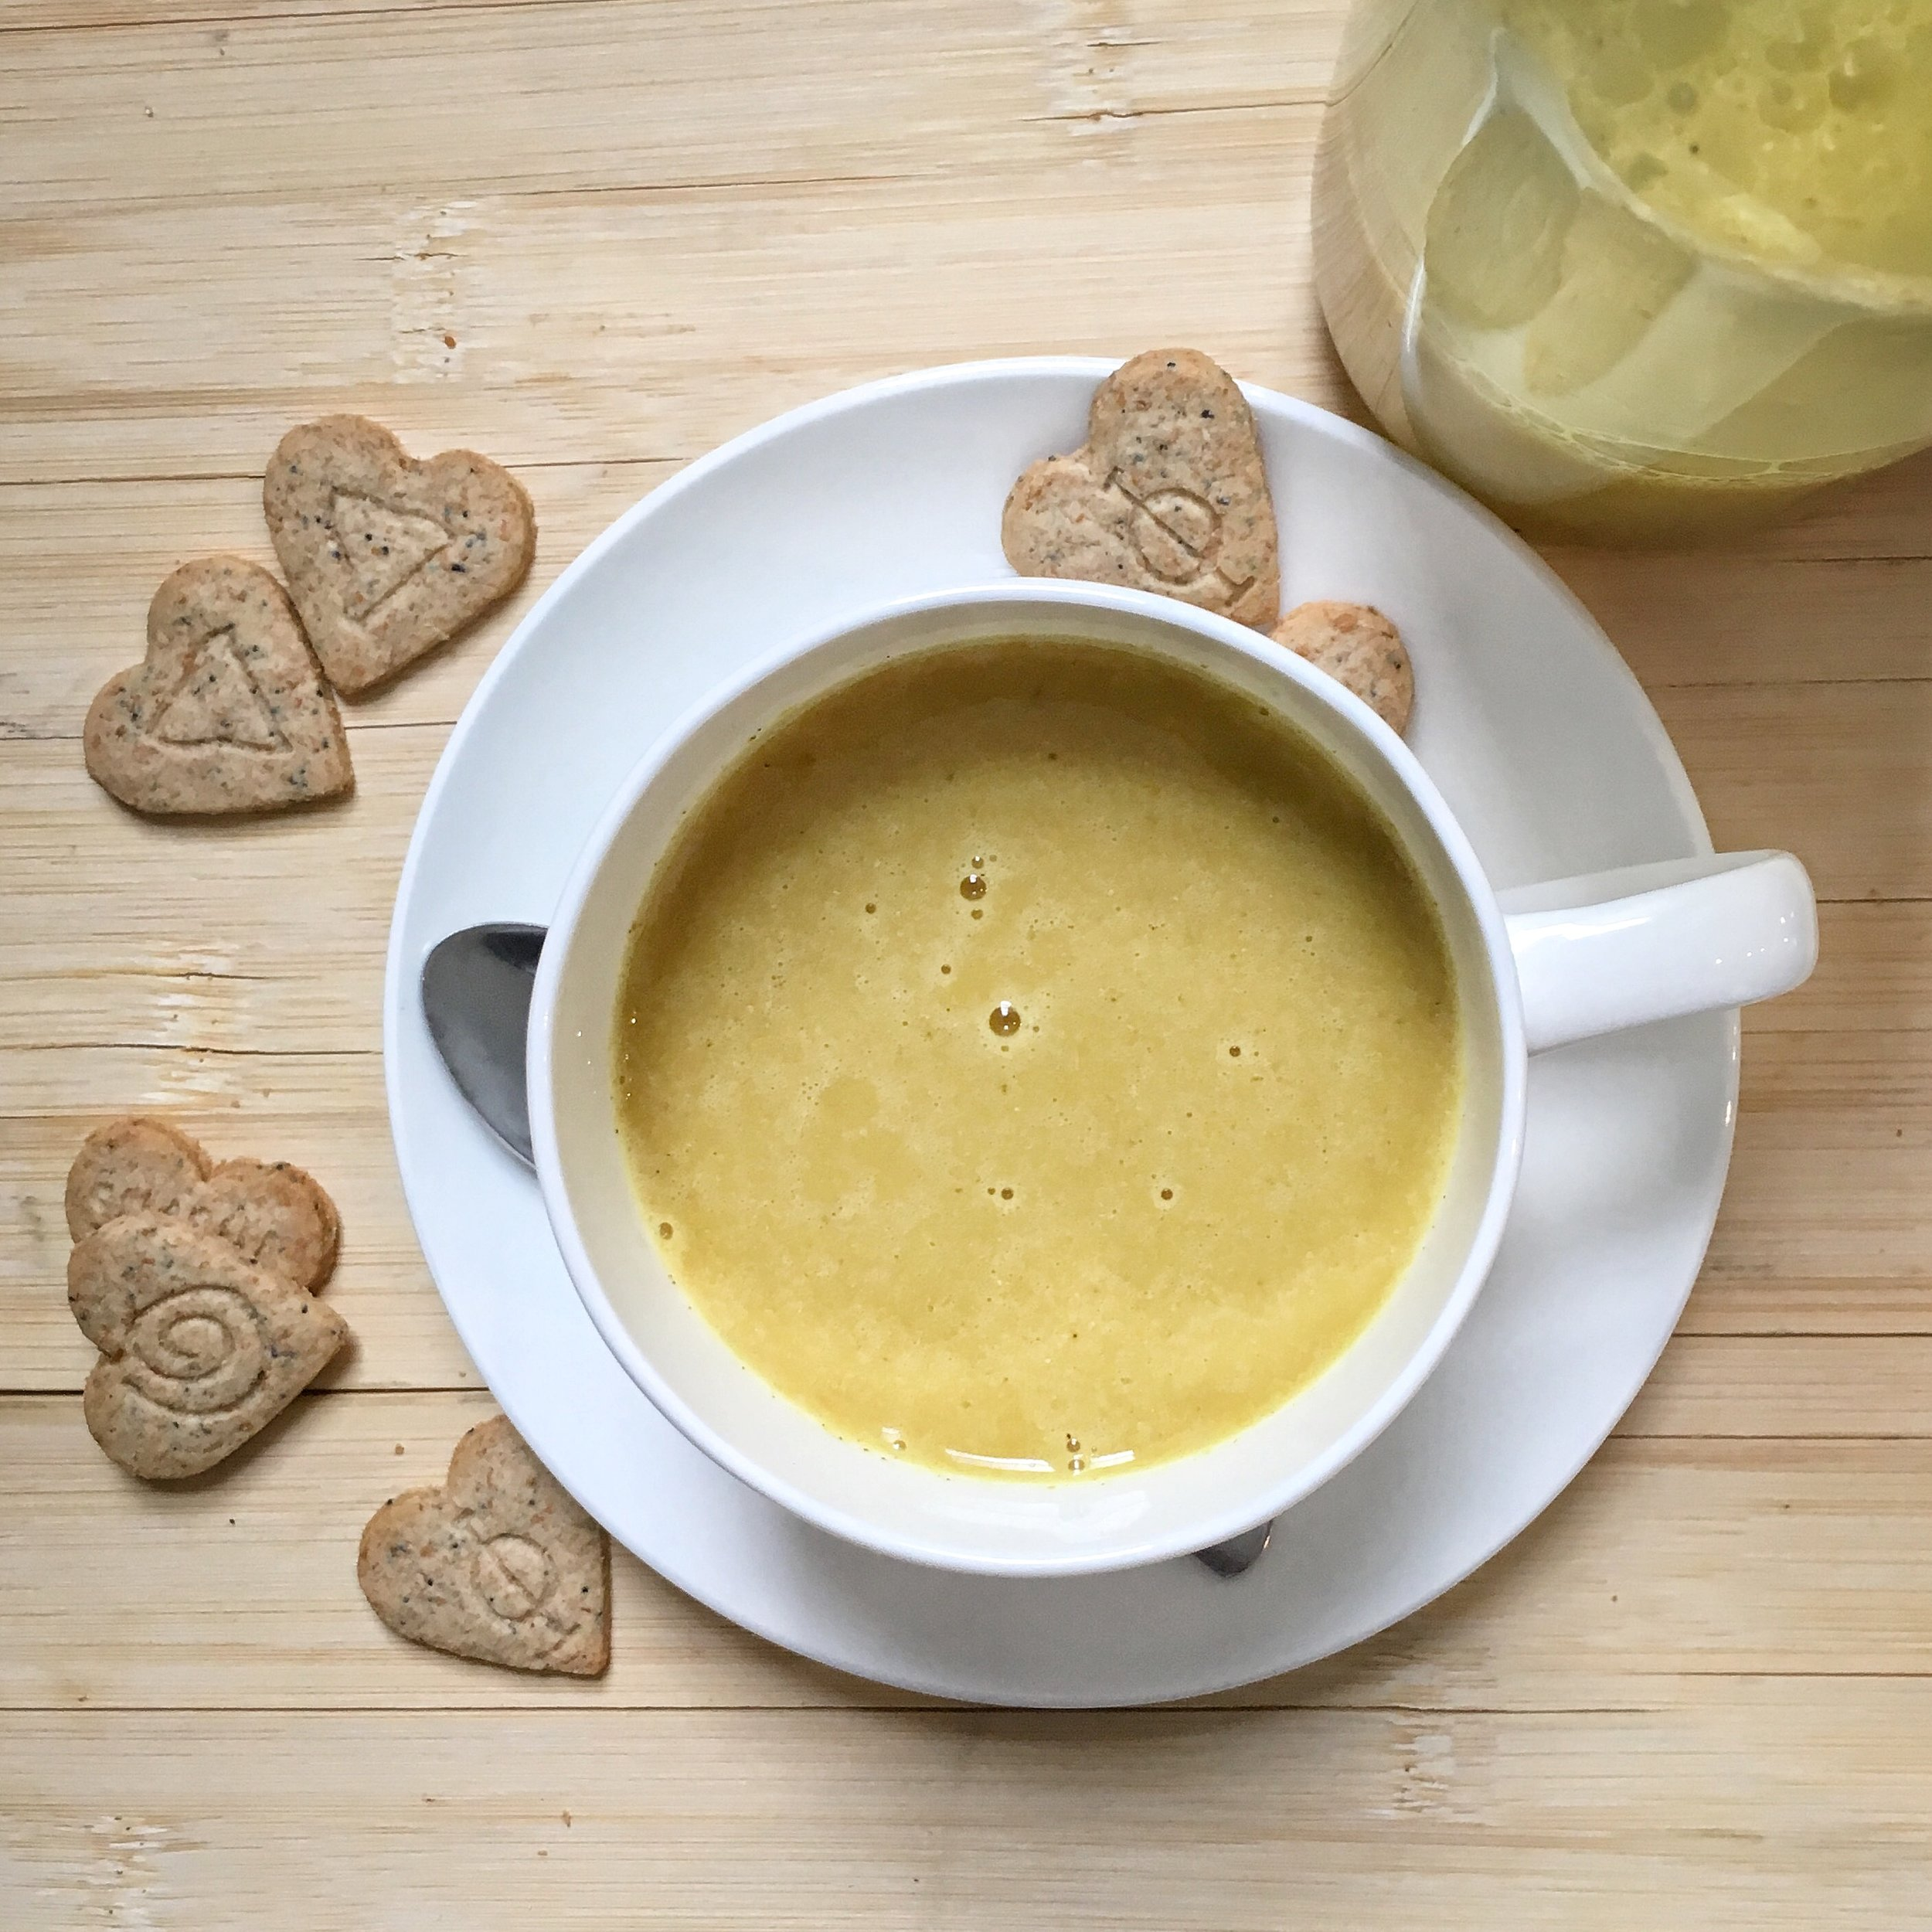 Golden Milk / Turmeric Latte